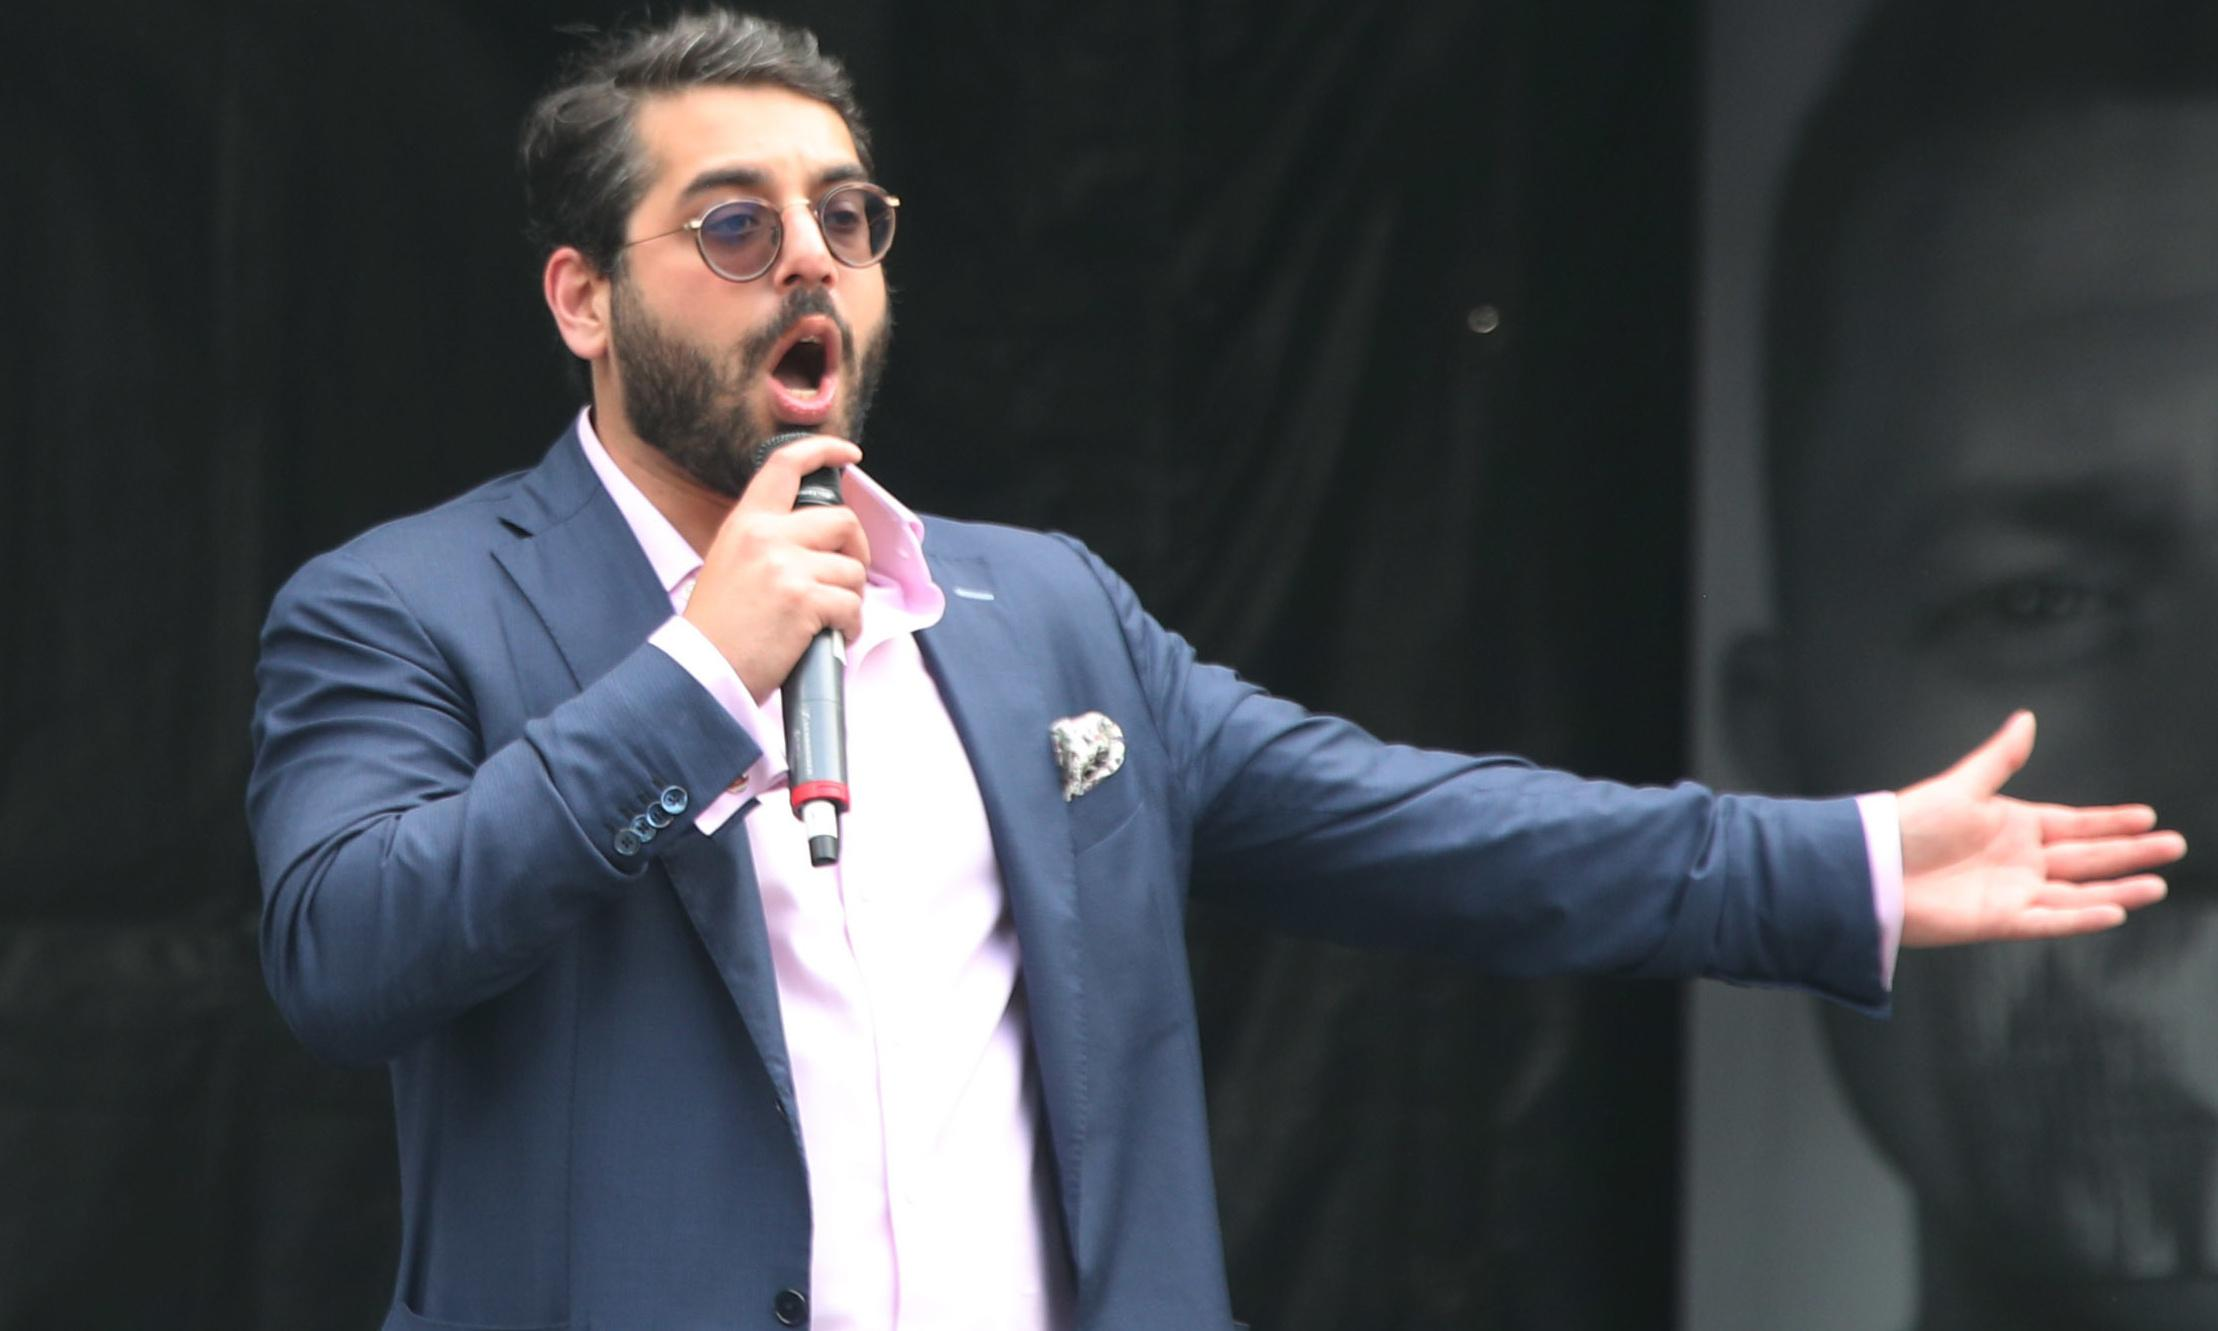 Labor wants Australia to refuse visa for 'career bigot' Raheem Kassam